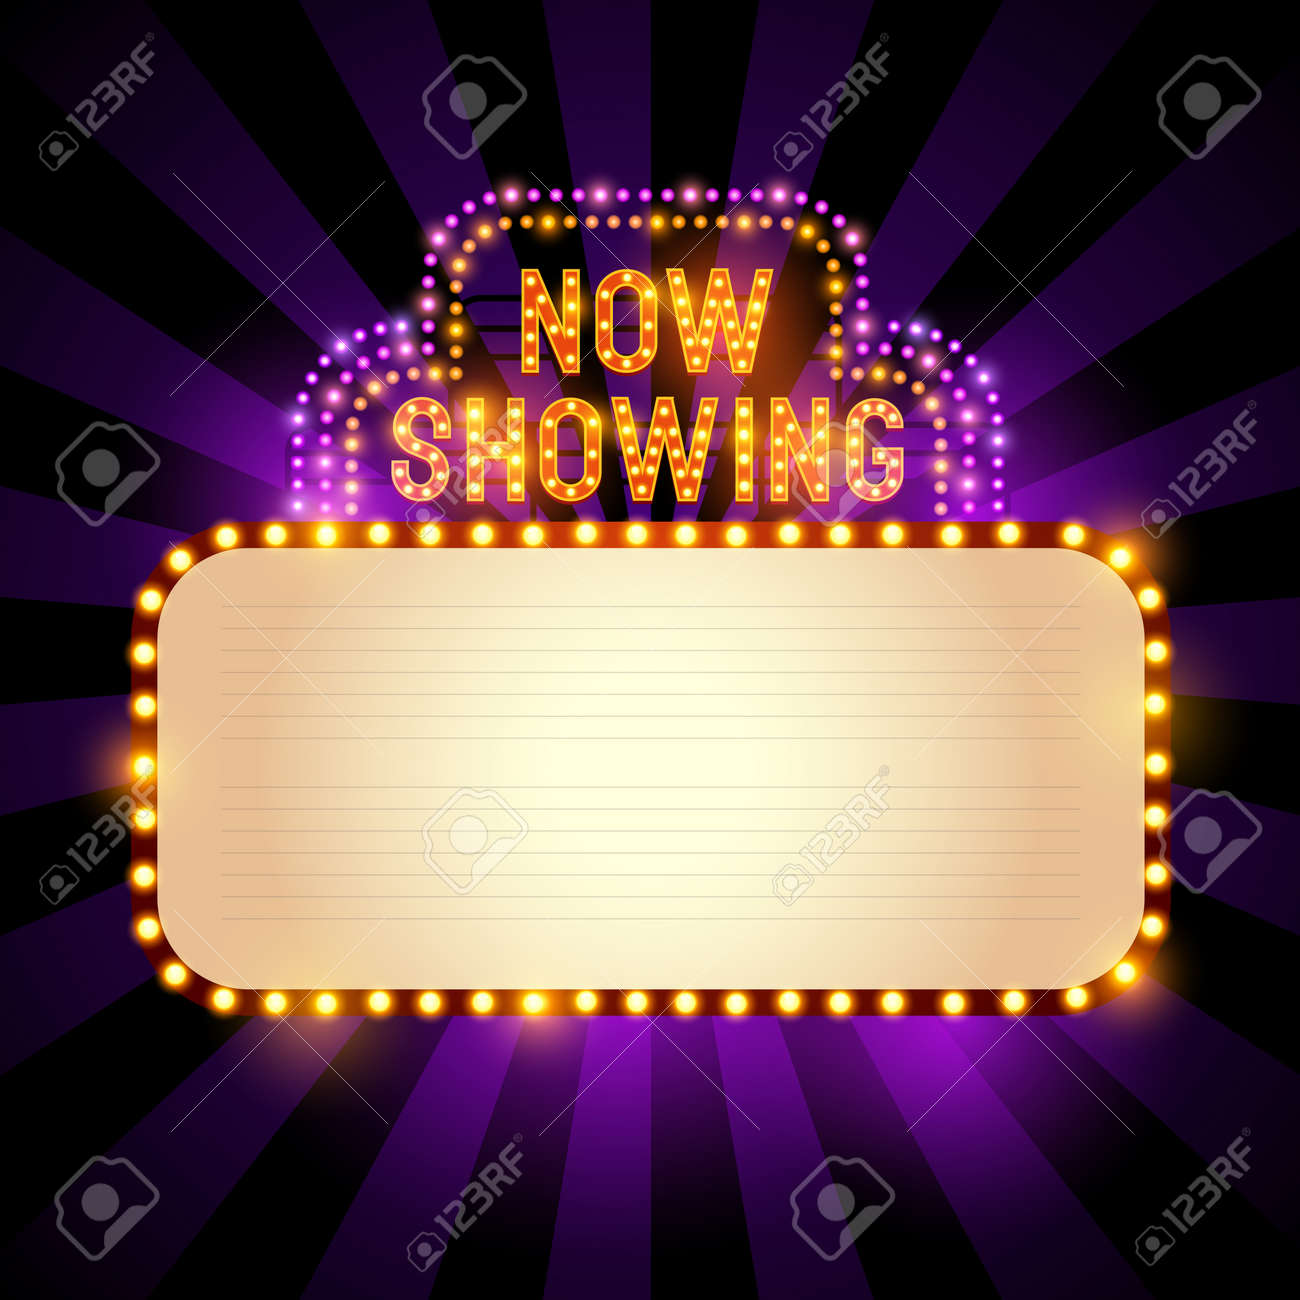 Vintage theatre / cinema sign with lights and room for text. Vector illustration - 70737532